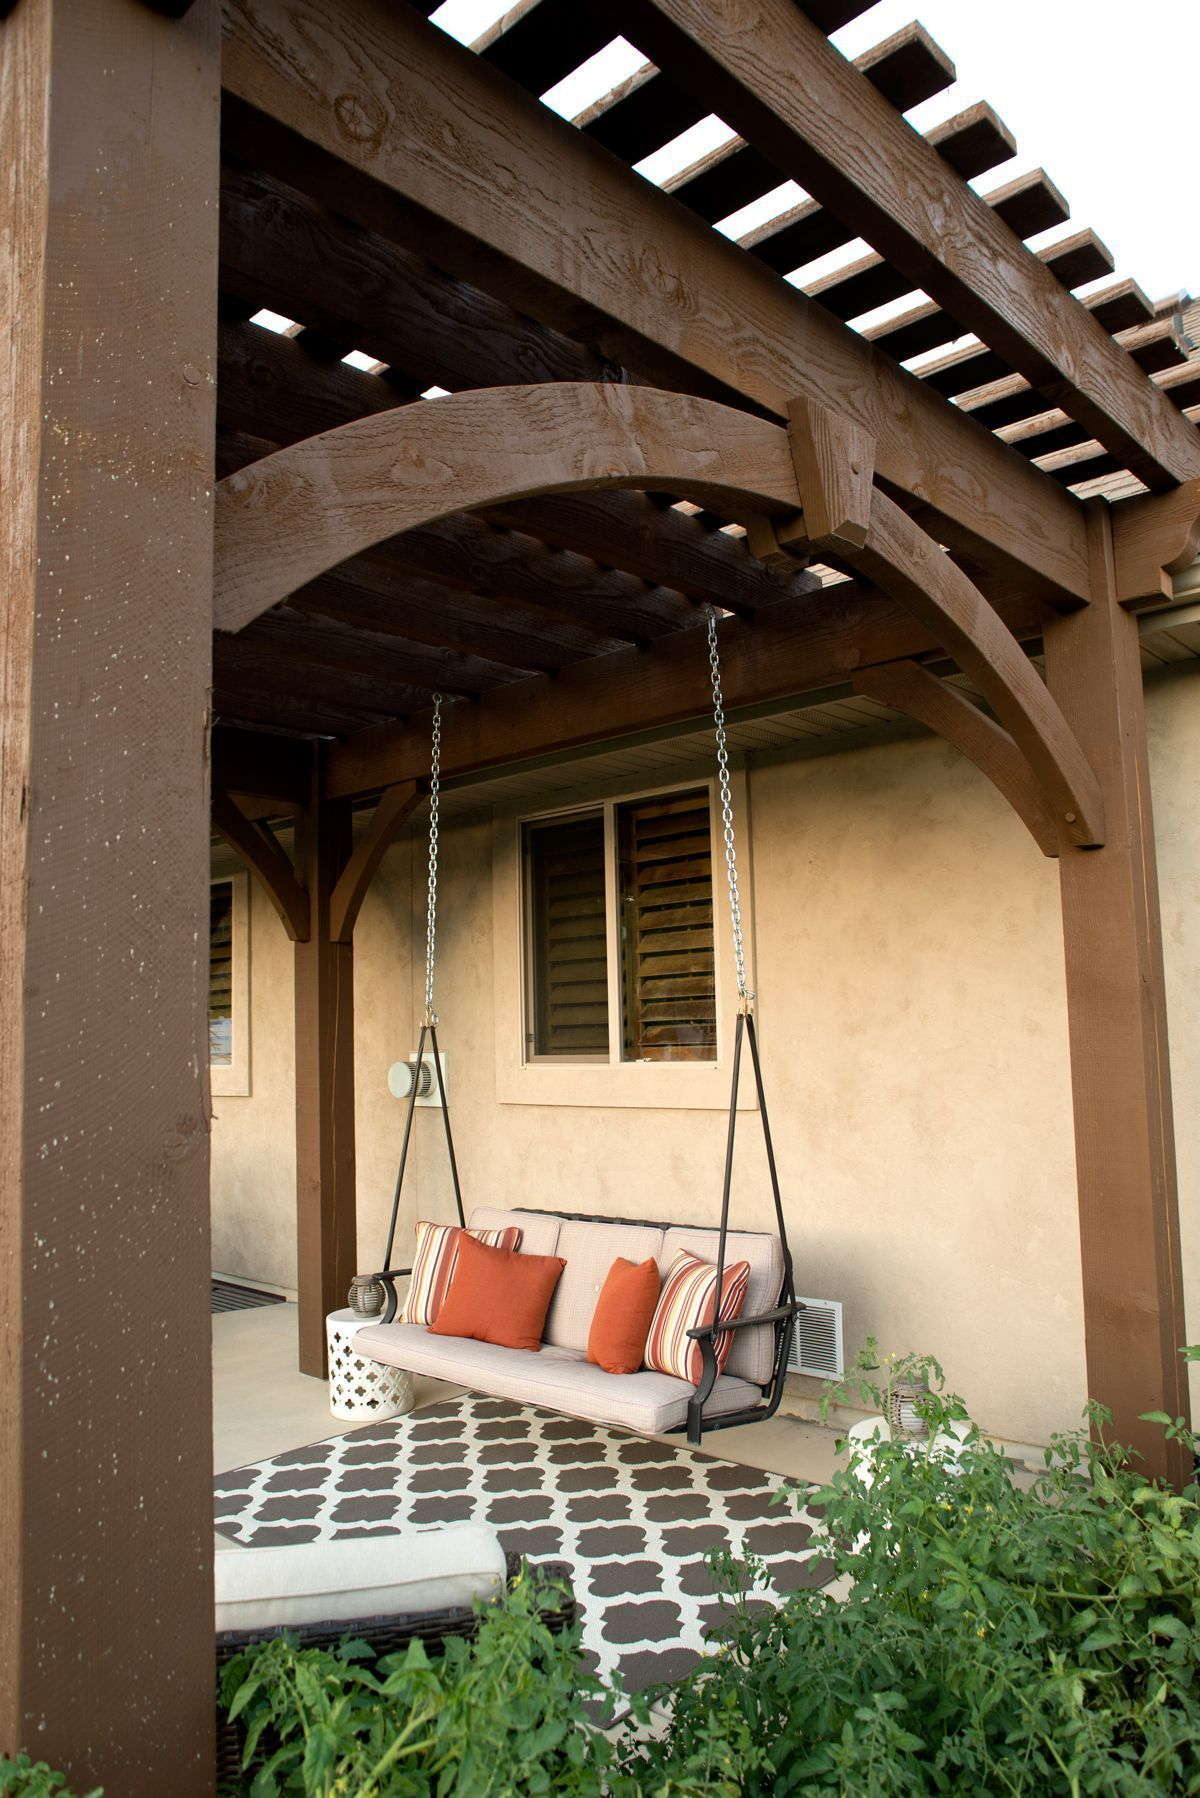 Free standing DIY timber frame pergola kit installed over backyard deck  with full arched knee braces and decorative keystones. With old world  craftsmanship ... - Free Standing DIY Timber Frame Pergola Kit Installed Over Backyard